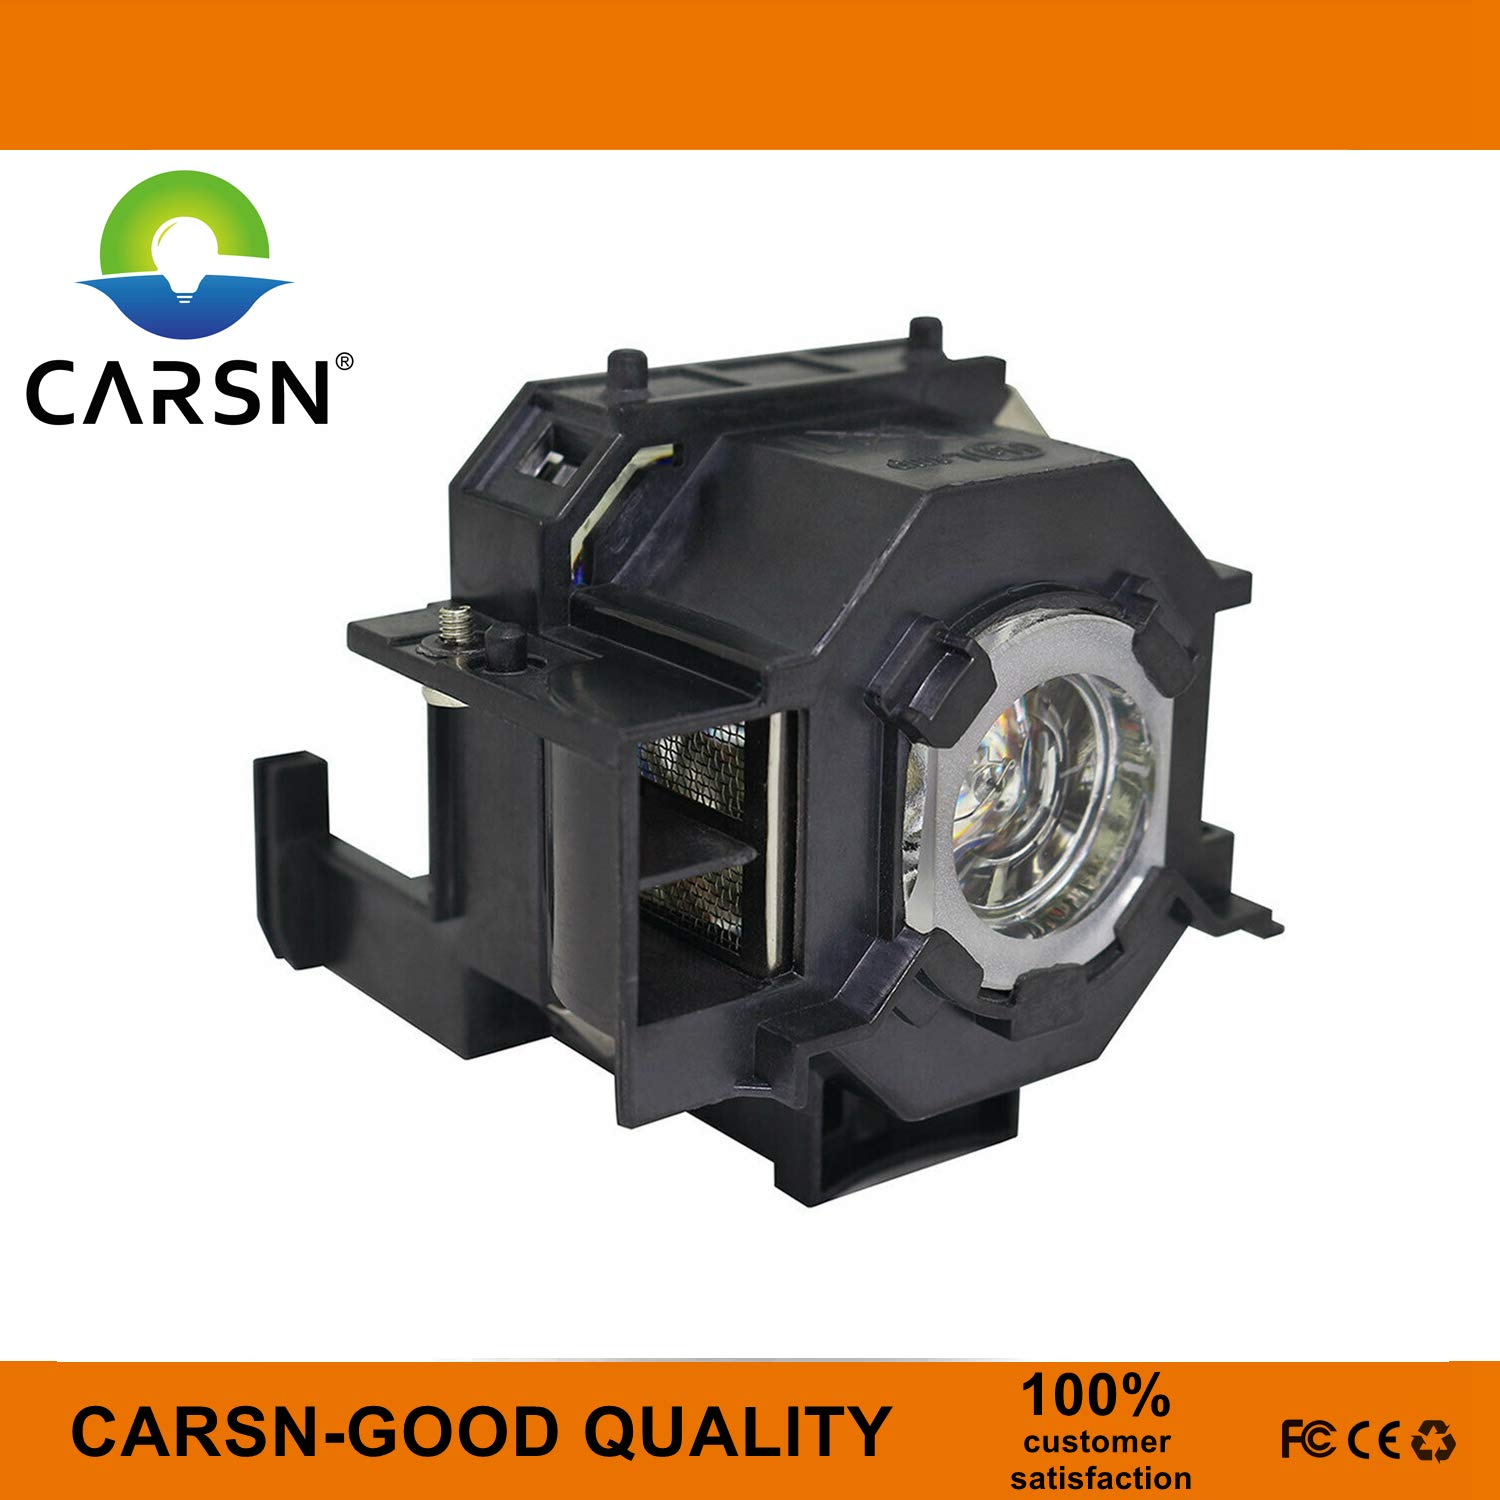 Lamp with Housing by CARSN ELP-LP41 Replacement Projector Lamp for Epson EB-S6 EB-S62 EB-TW420 EB-W6 EB-X6 EB-X62 EH-TW420 EMP-77C EMP-S5 EB-X6LU EX30 EMP-X6 EX21 EX50 EX70 PowerLite 78